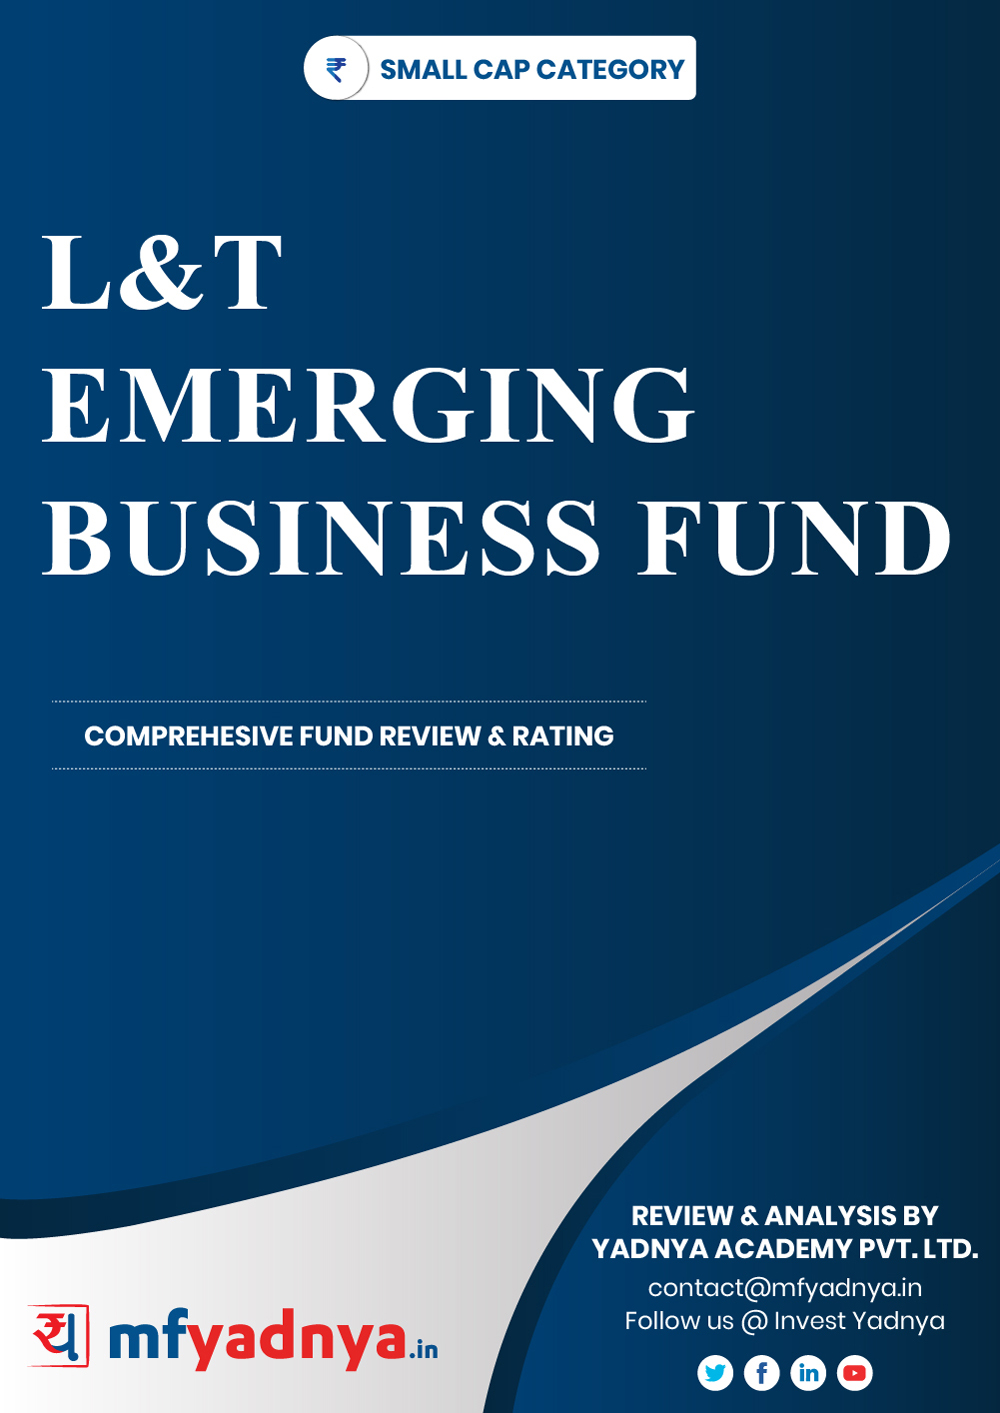 Small Cap Category Review - L&T Emerging Businesses Fund. Most Comprehensive and detailed MF review based on Yadnya's proprietary methodology of Green, Yellow & Red Star. Detailed Analysis & Review based on August 31st, 2019 data.